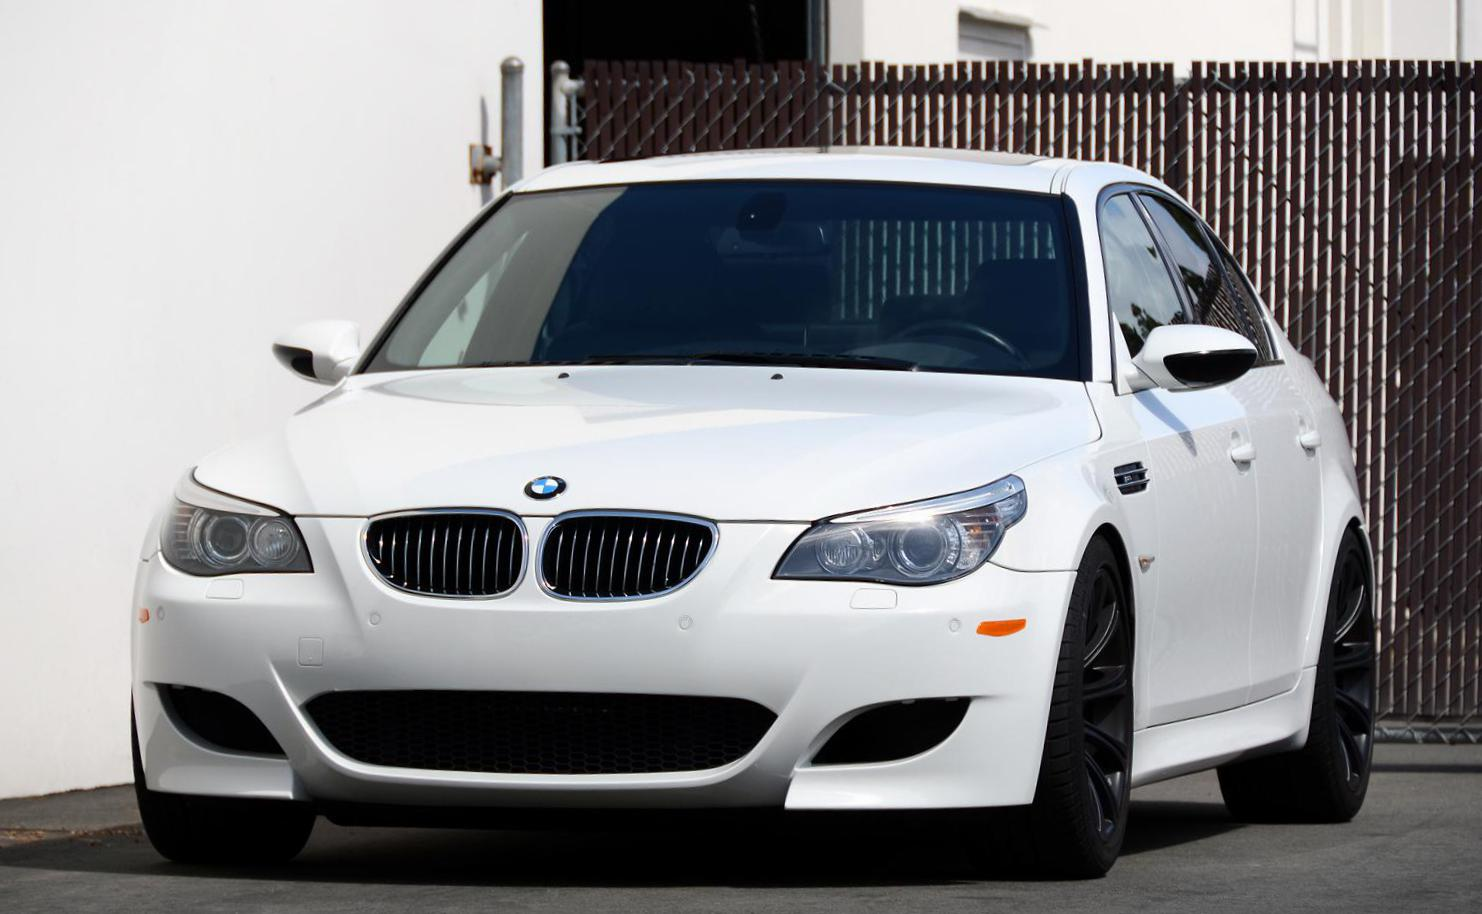 M5 Sedan (E60) BMW for sale 2012